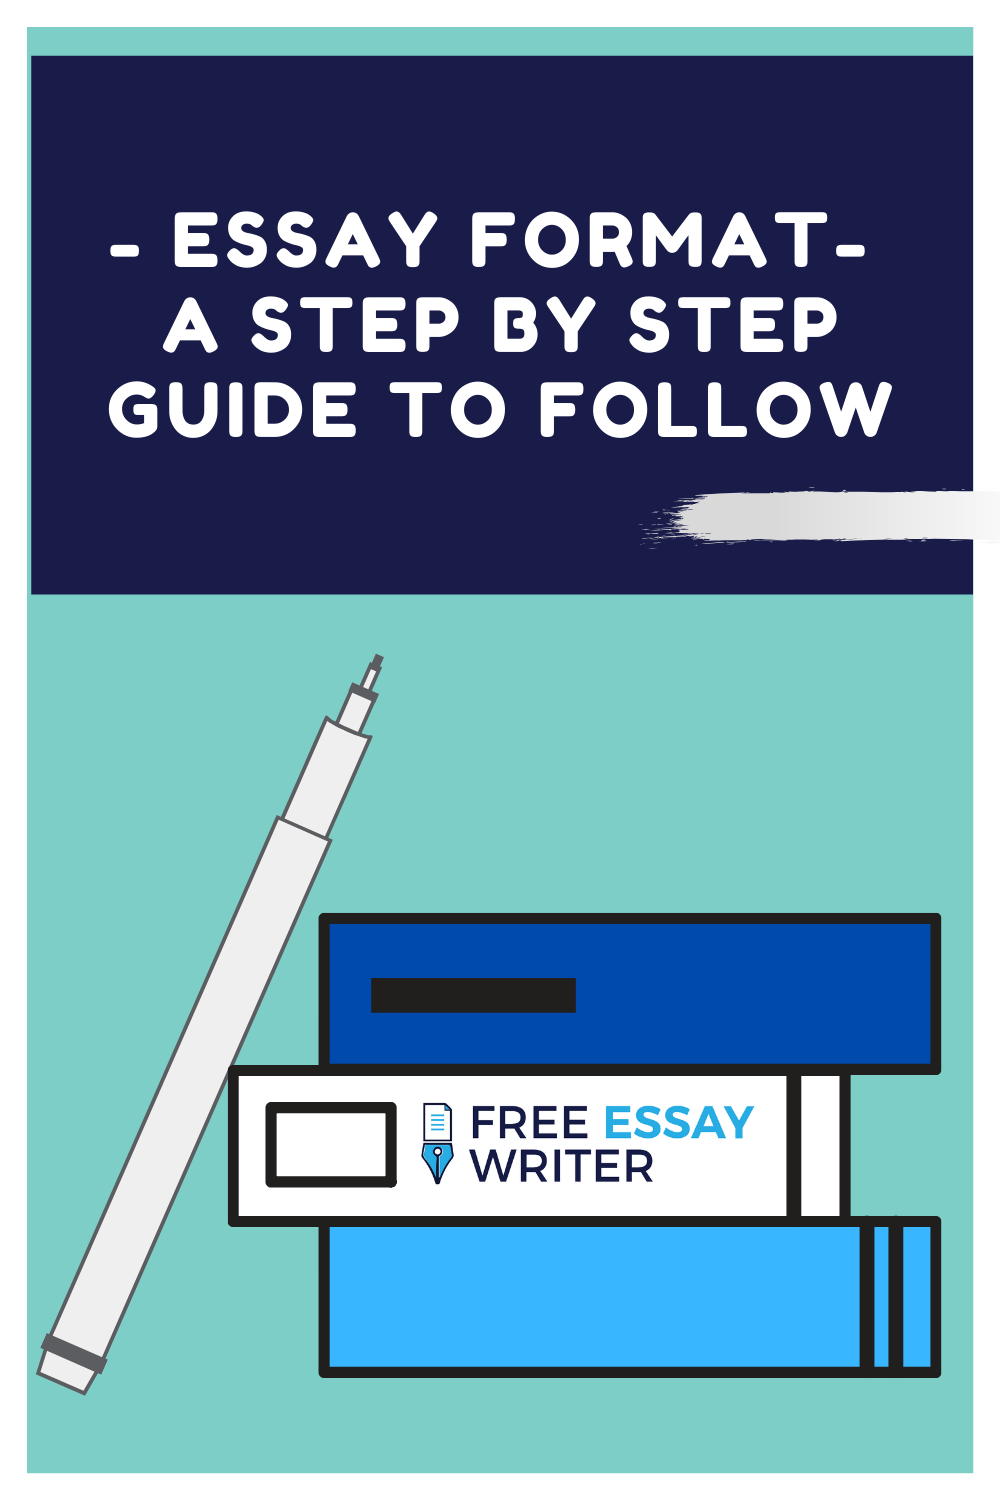 Essay Format - A Step by Step Guide To Follow | Essay format, Essay, Essay  writer